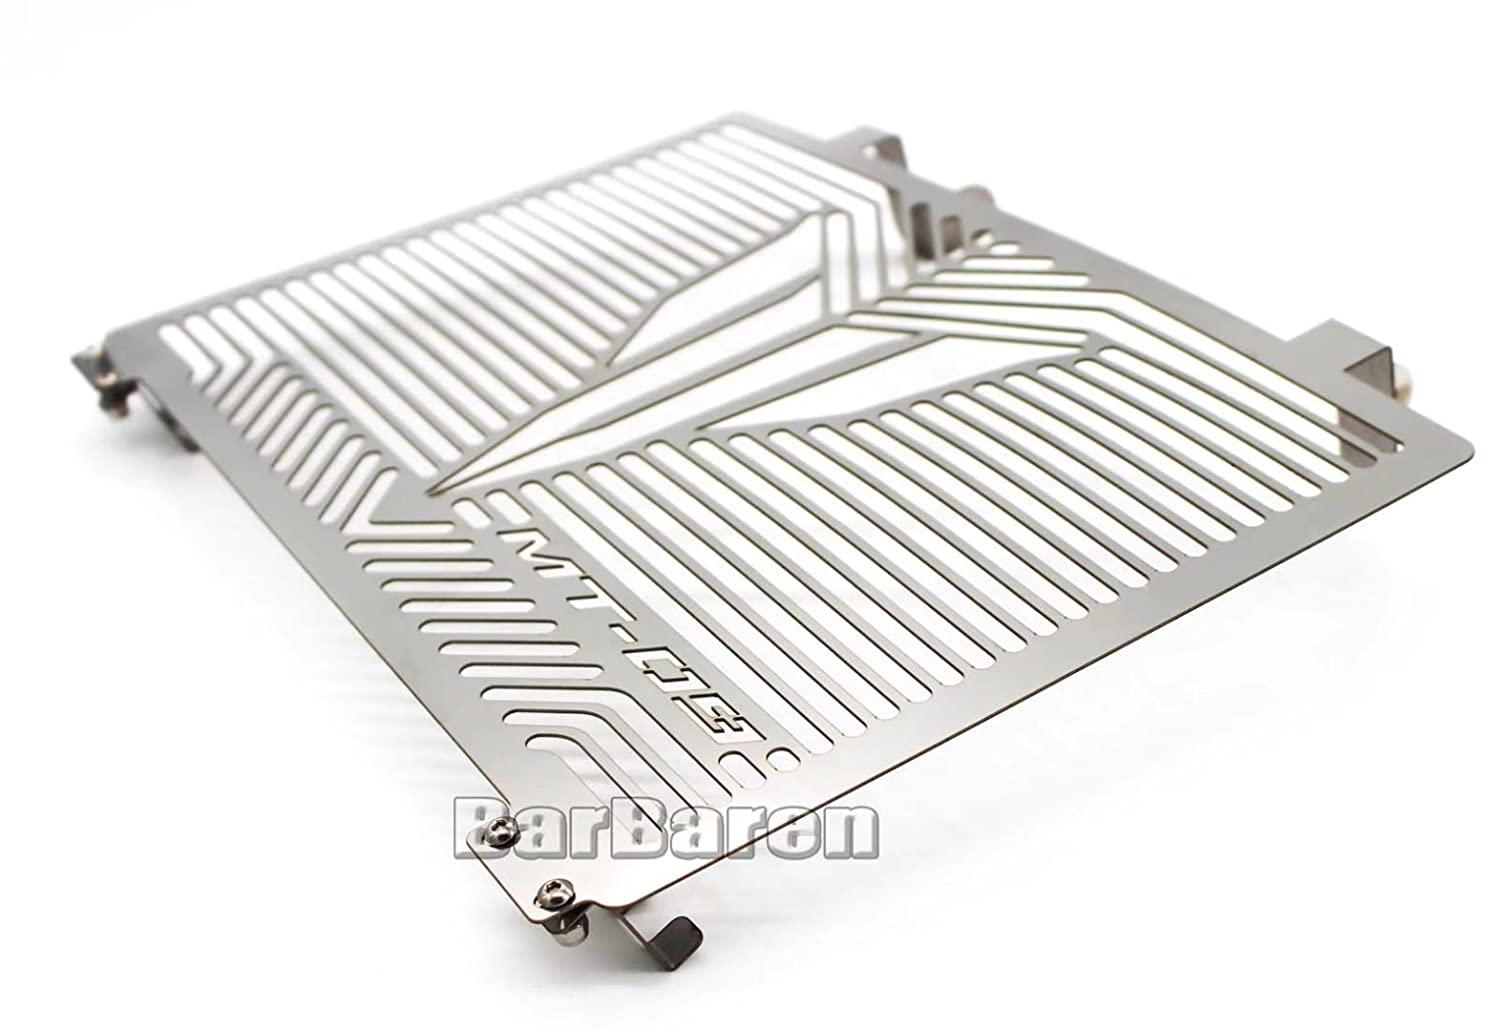 Radiator Grill Grille Cover For Yamaha MT-09 MT09 Tracer FJ-09